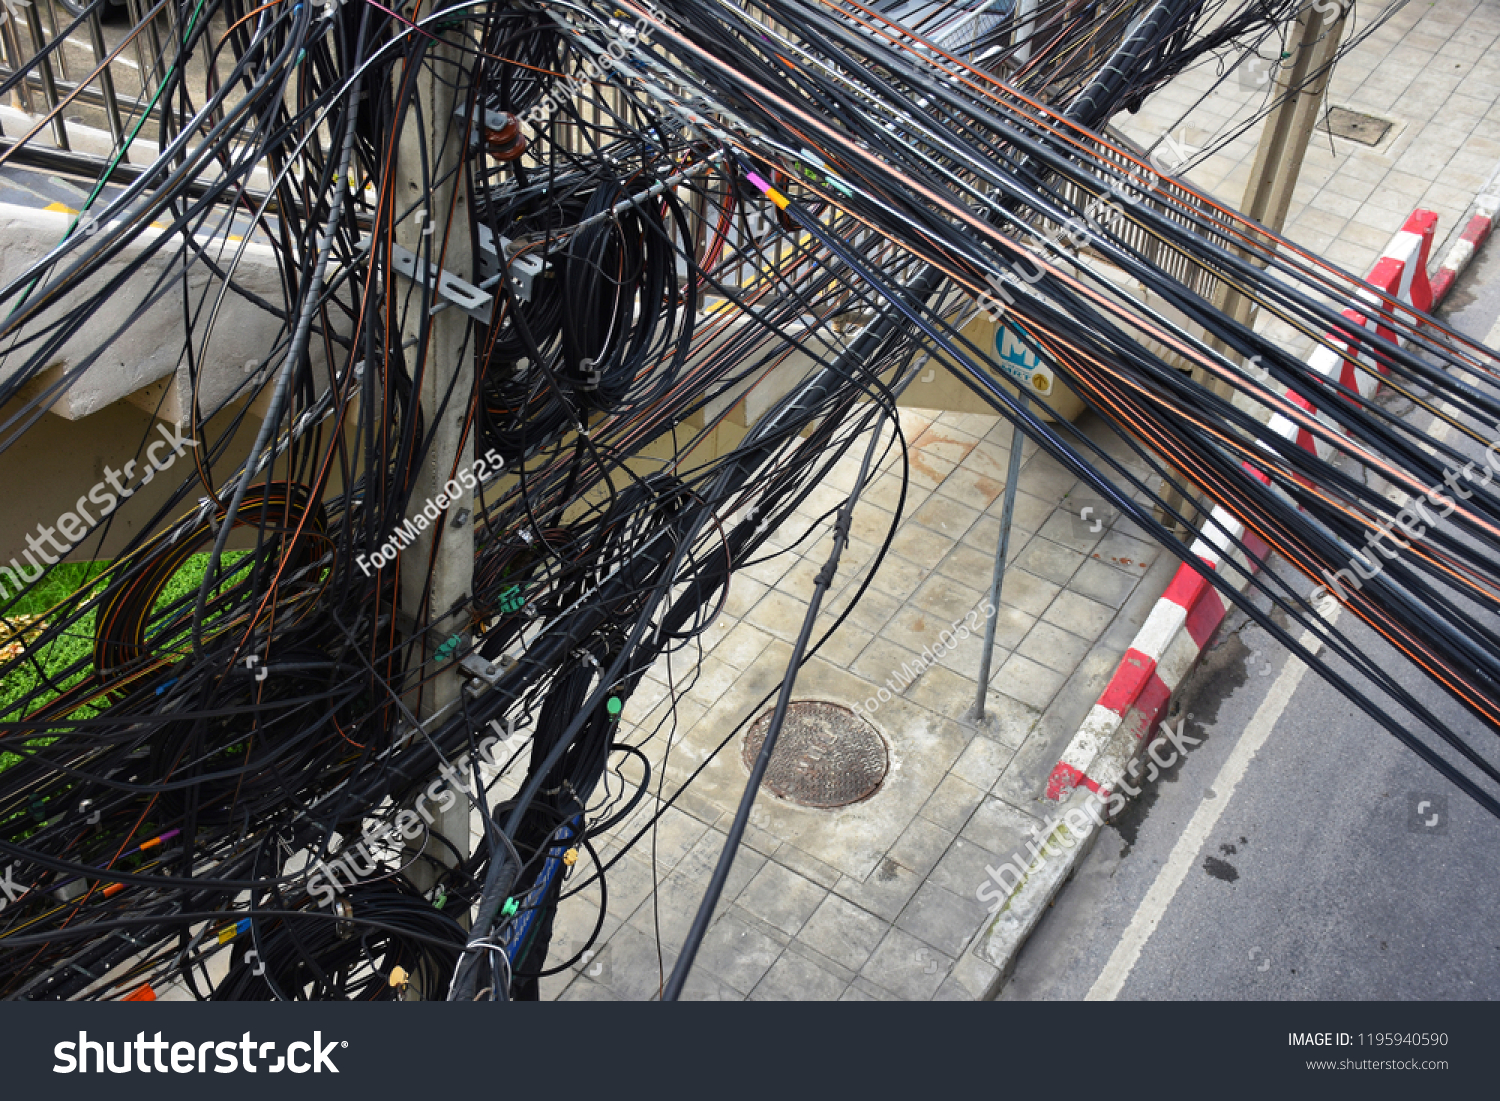 Tangled Cables Messy Electricity System Bangkok Stock Photo Edit Wiring And In City Thailand Electrical Wires Hang